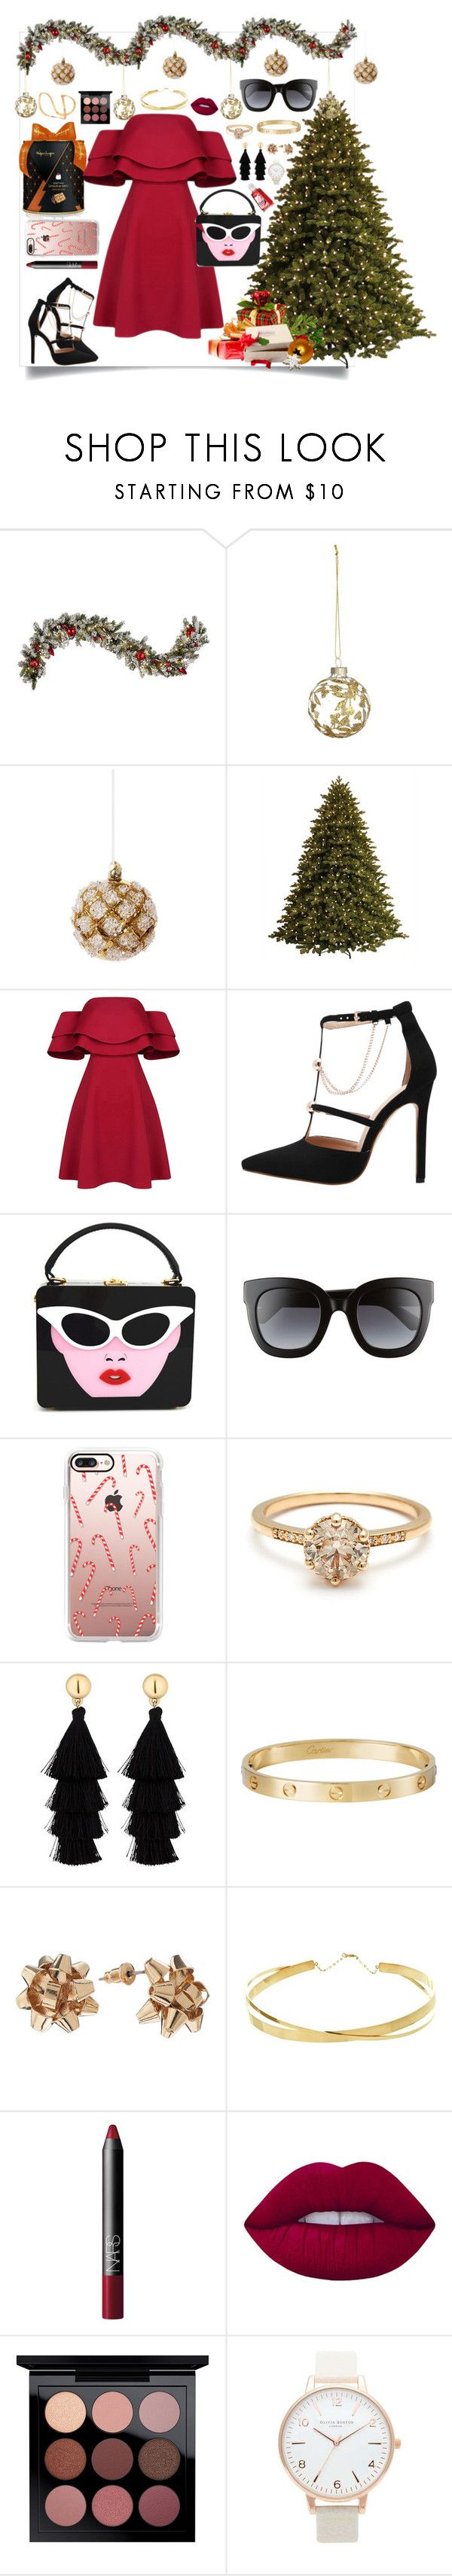 """🎄🎁Natal🎁🎄"" by julianafb ❤ liked on Polyvore featuring Improvements, Shishi, GE, Gucci, Casetify, Red Herring, Cartier, Lana Jewelry, NARS Cosmetics and Lime Crime"